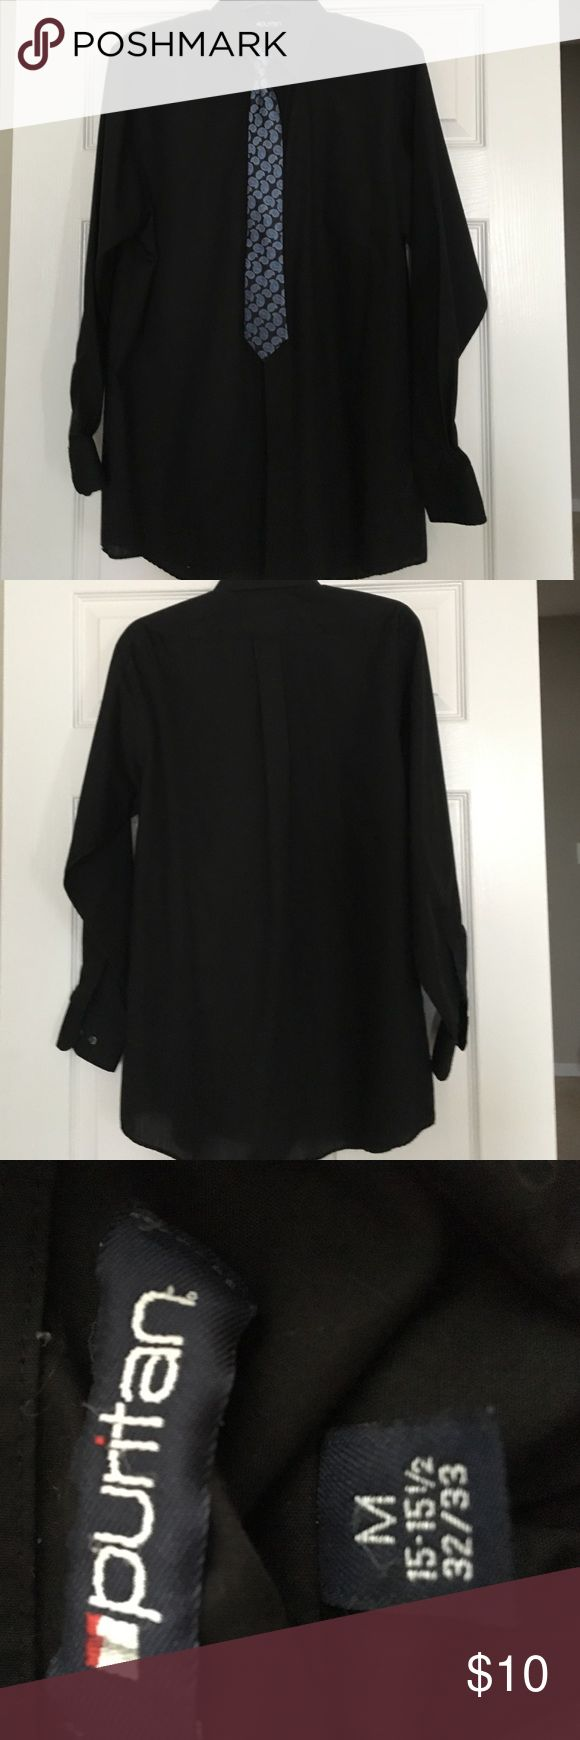 Boys Black Dress shirt with clip on tie, Size M Boys Black Dress shirt with clip on tie, Size M, excellent condition Puntan Shirts & Tops Button Down Shirts